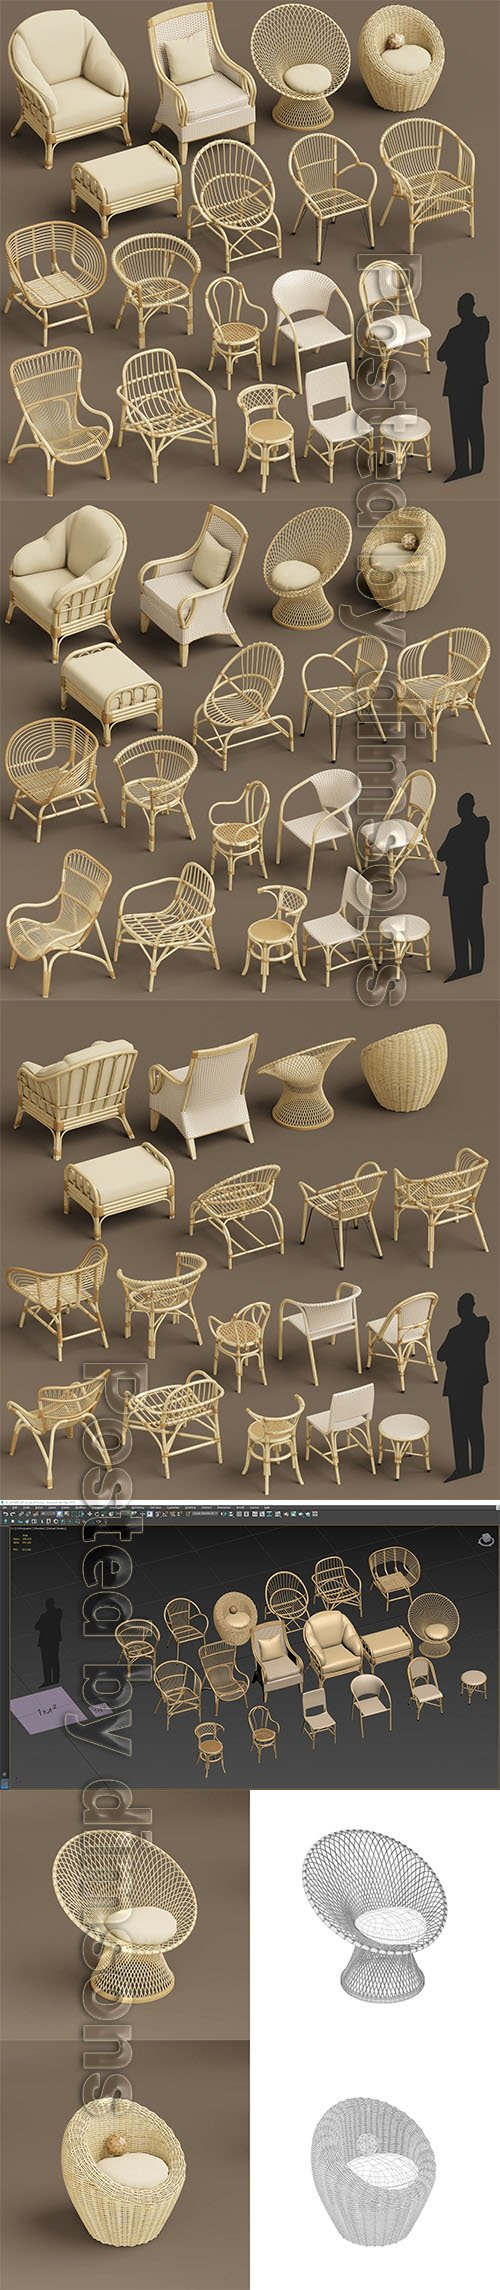 Wicker chair set A 3D model 3D model